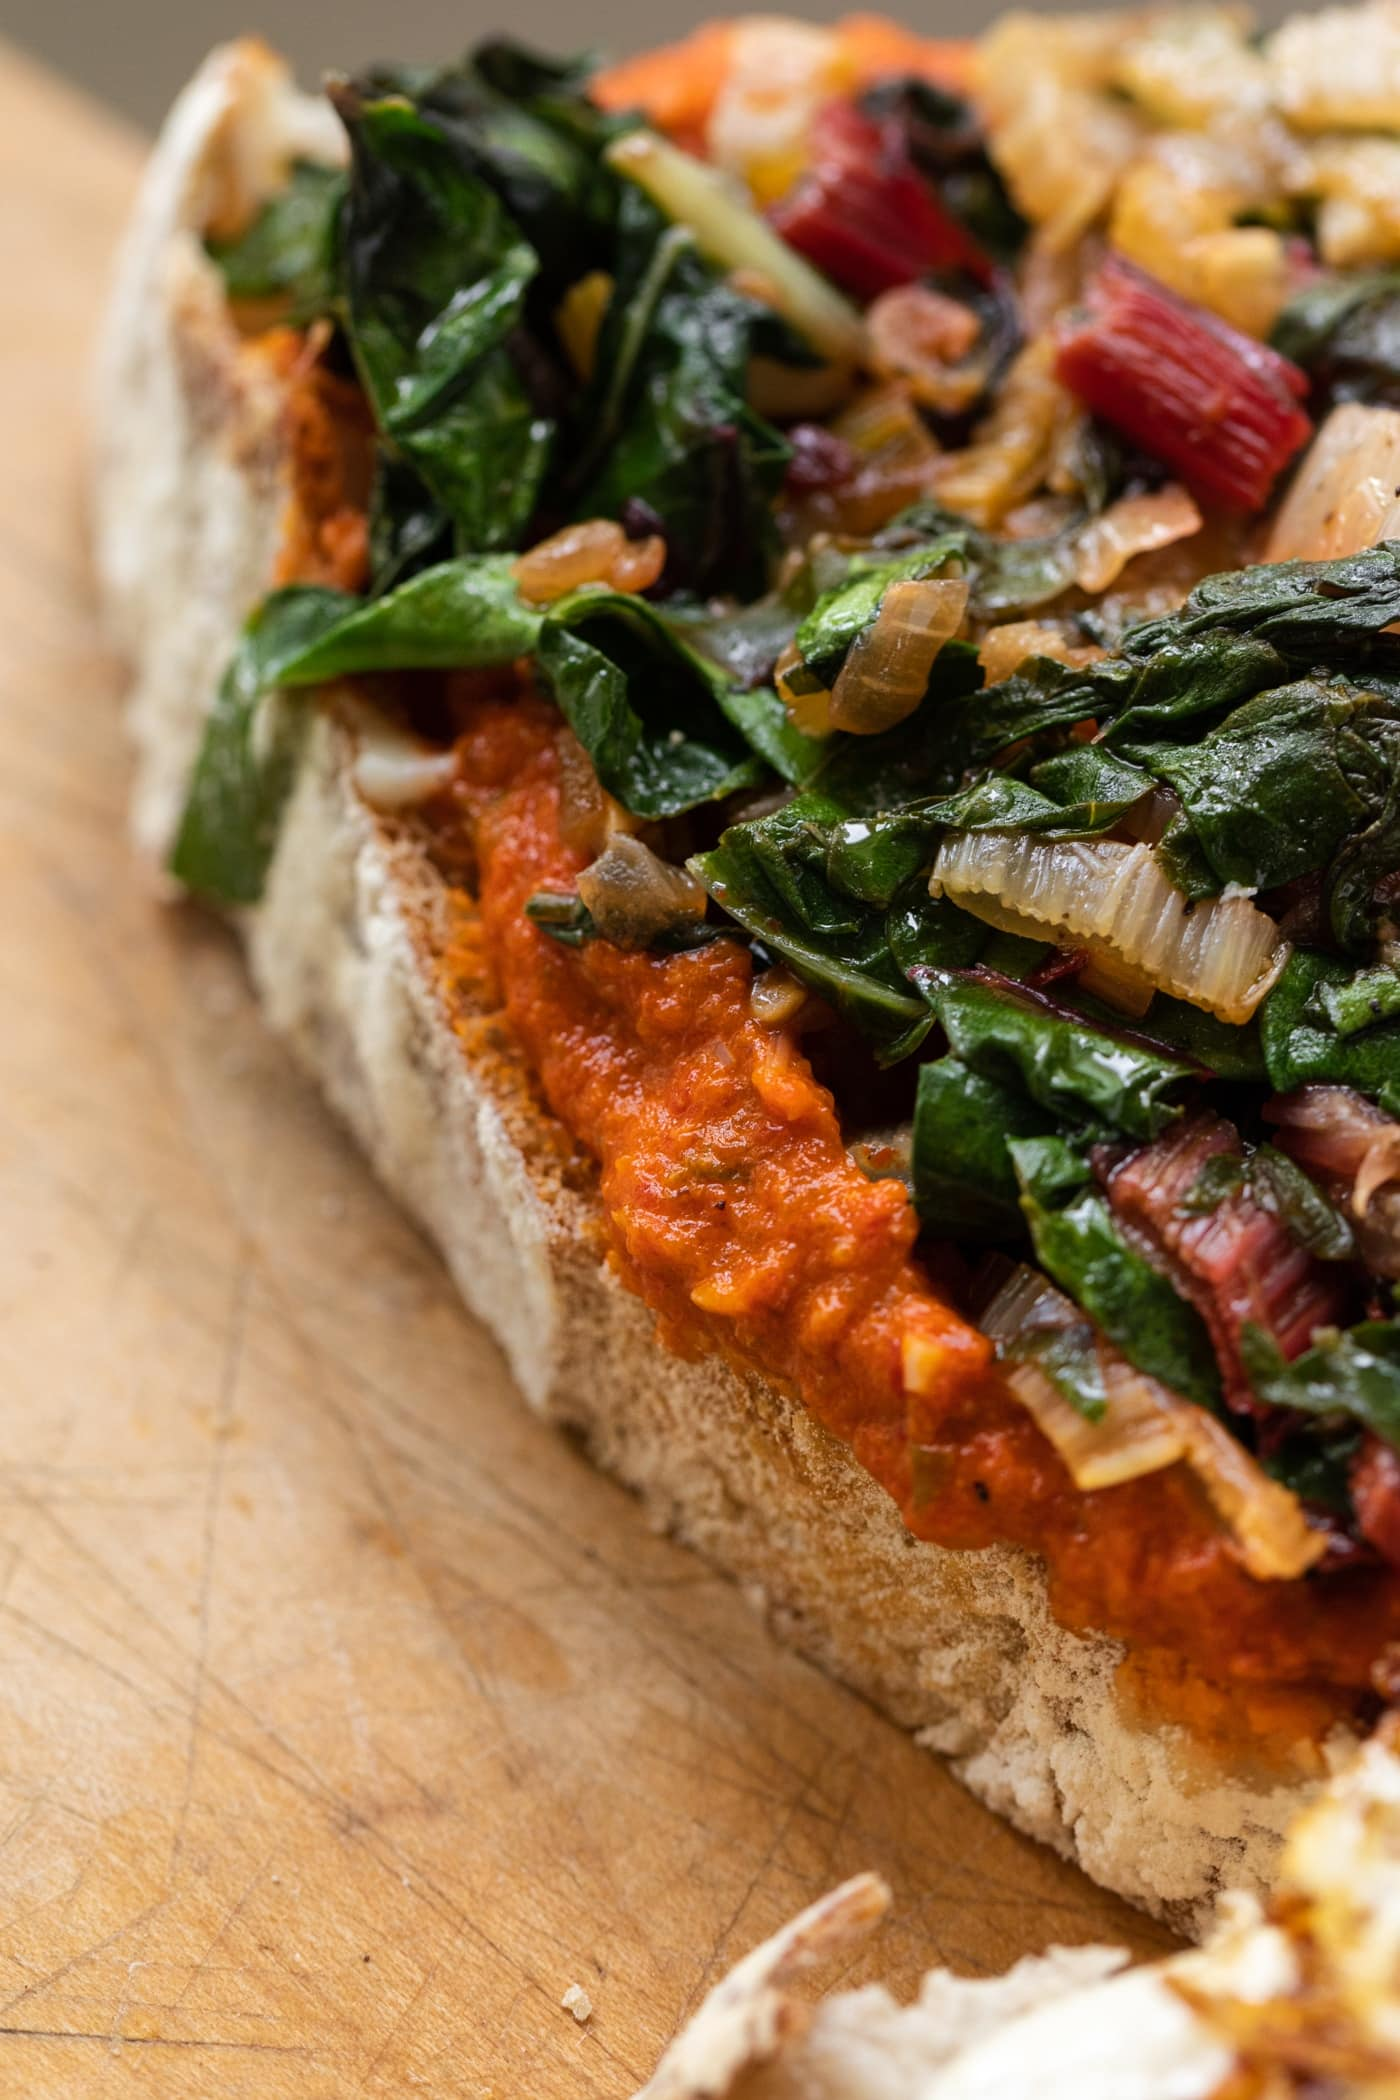 Harrisa sauce on piece of sourdough bread topped with Swiss chard mixture sitting on wood cutting board